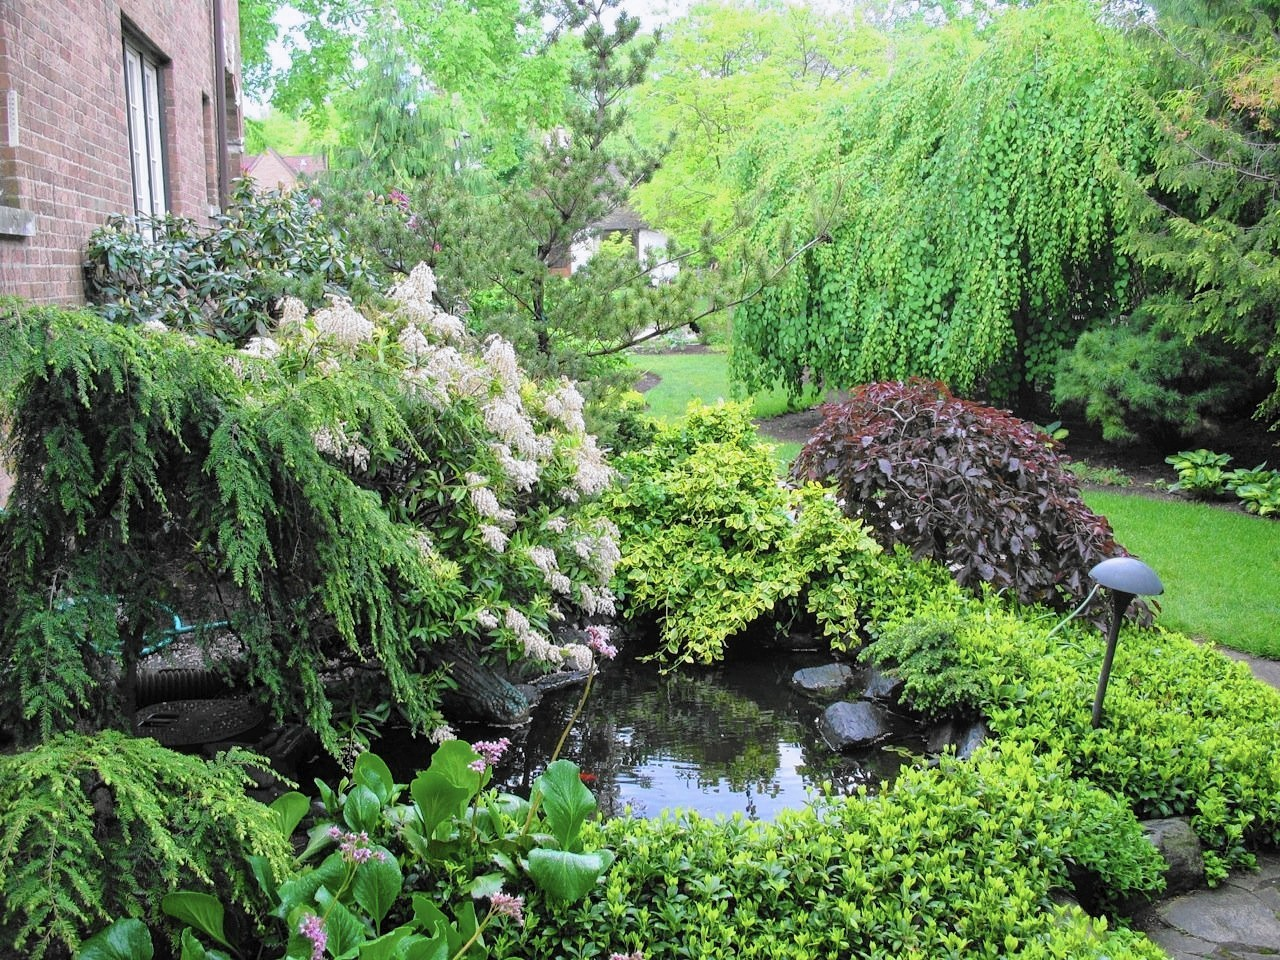 2017 guide to plant sales garden walks in chicago suburbs